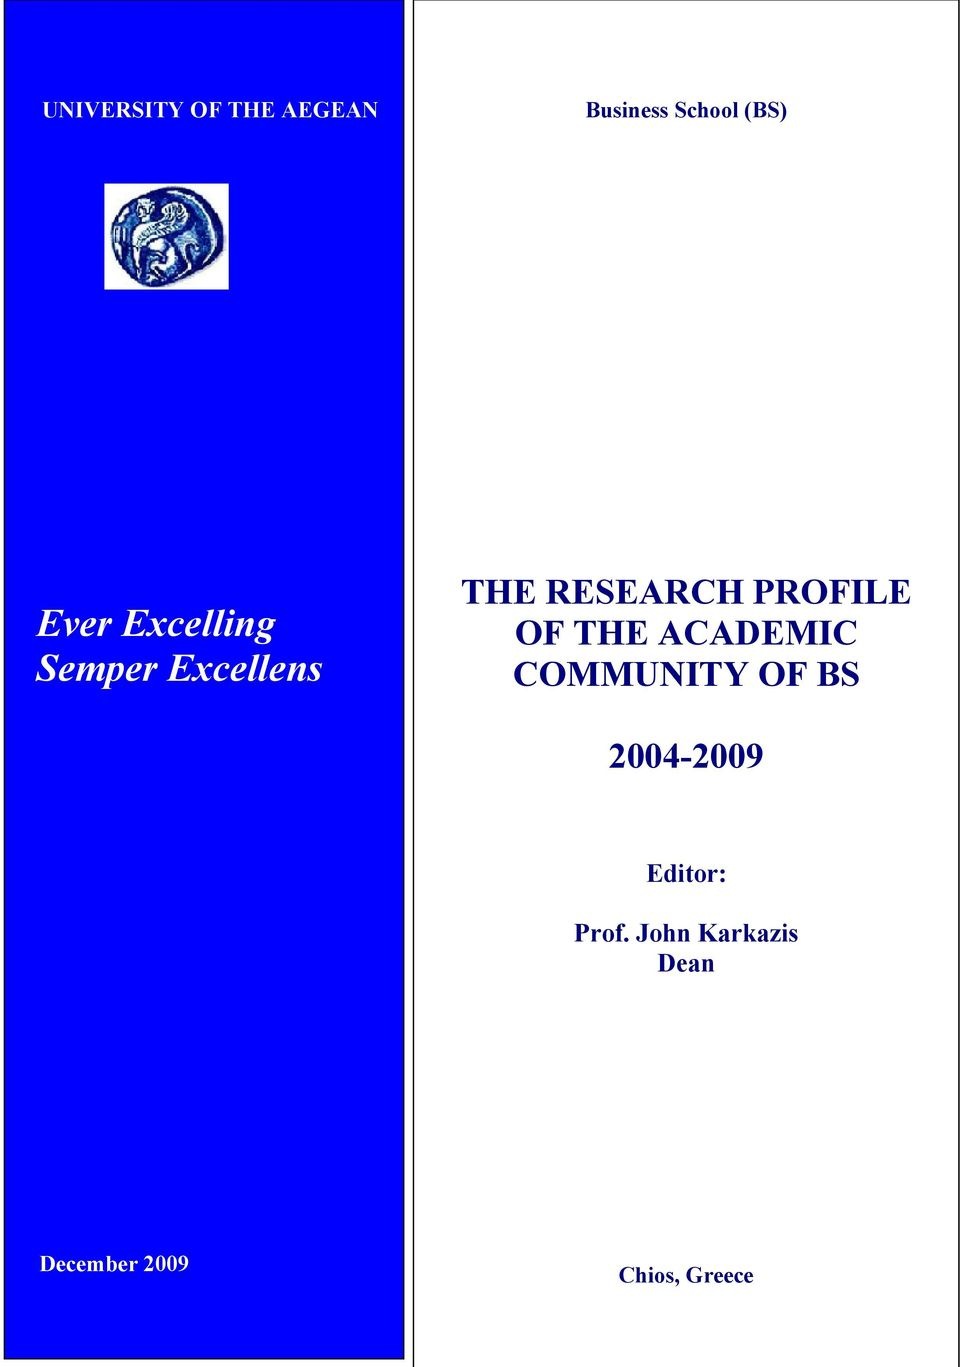 PROFILE OF THE ACADEMIC COMMUNITY OF BS 2004-2009